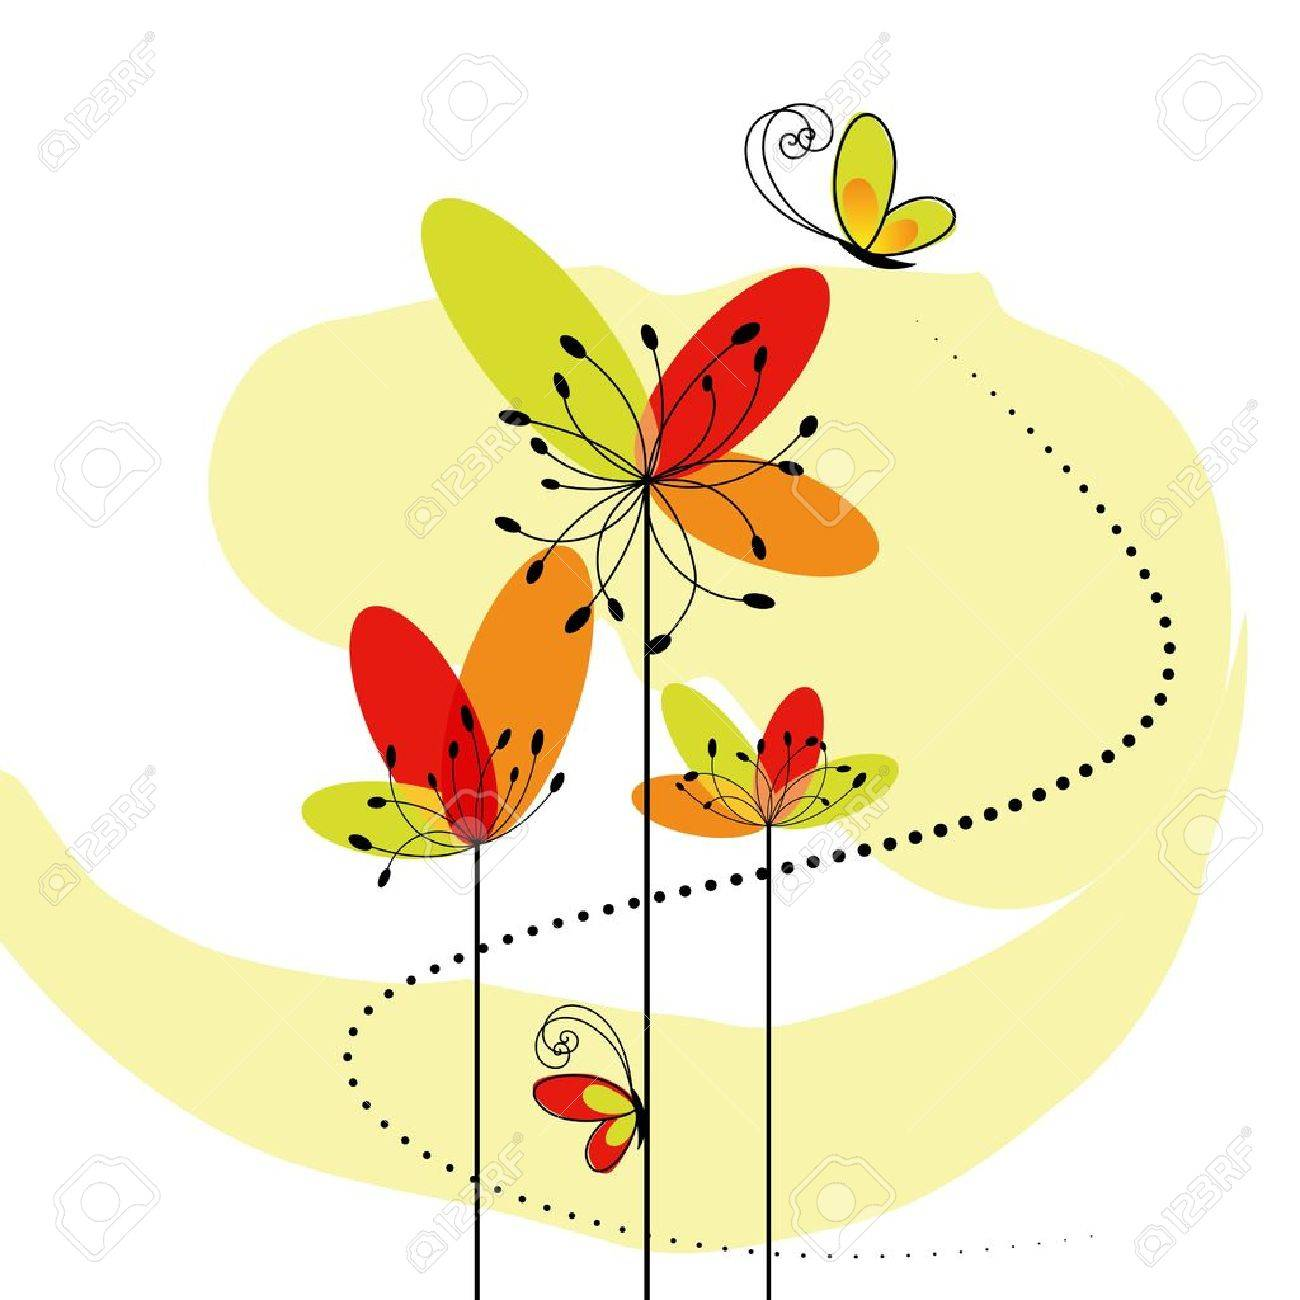 Abstract springtime flower with butterfly - 8911889